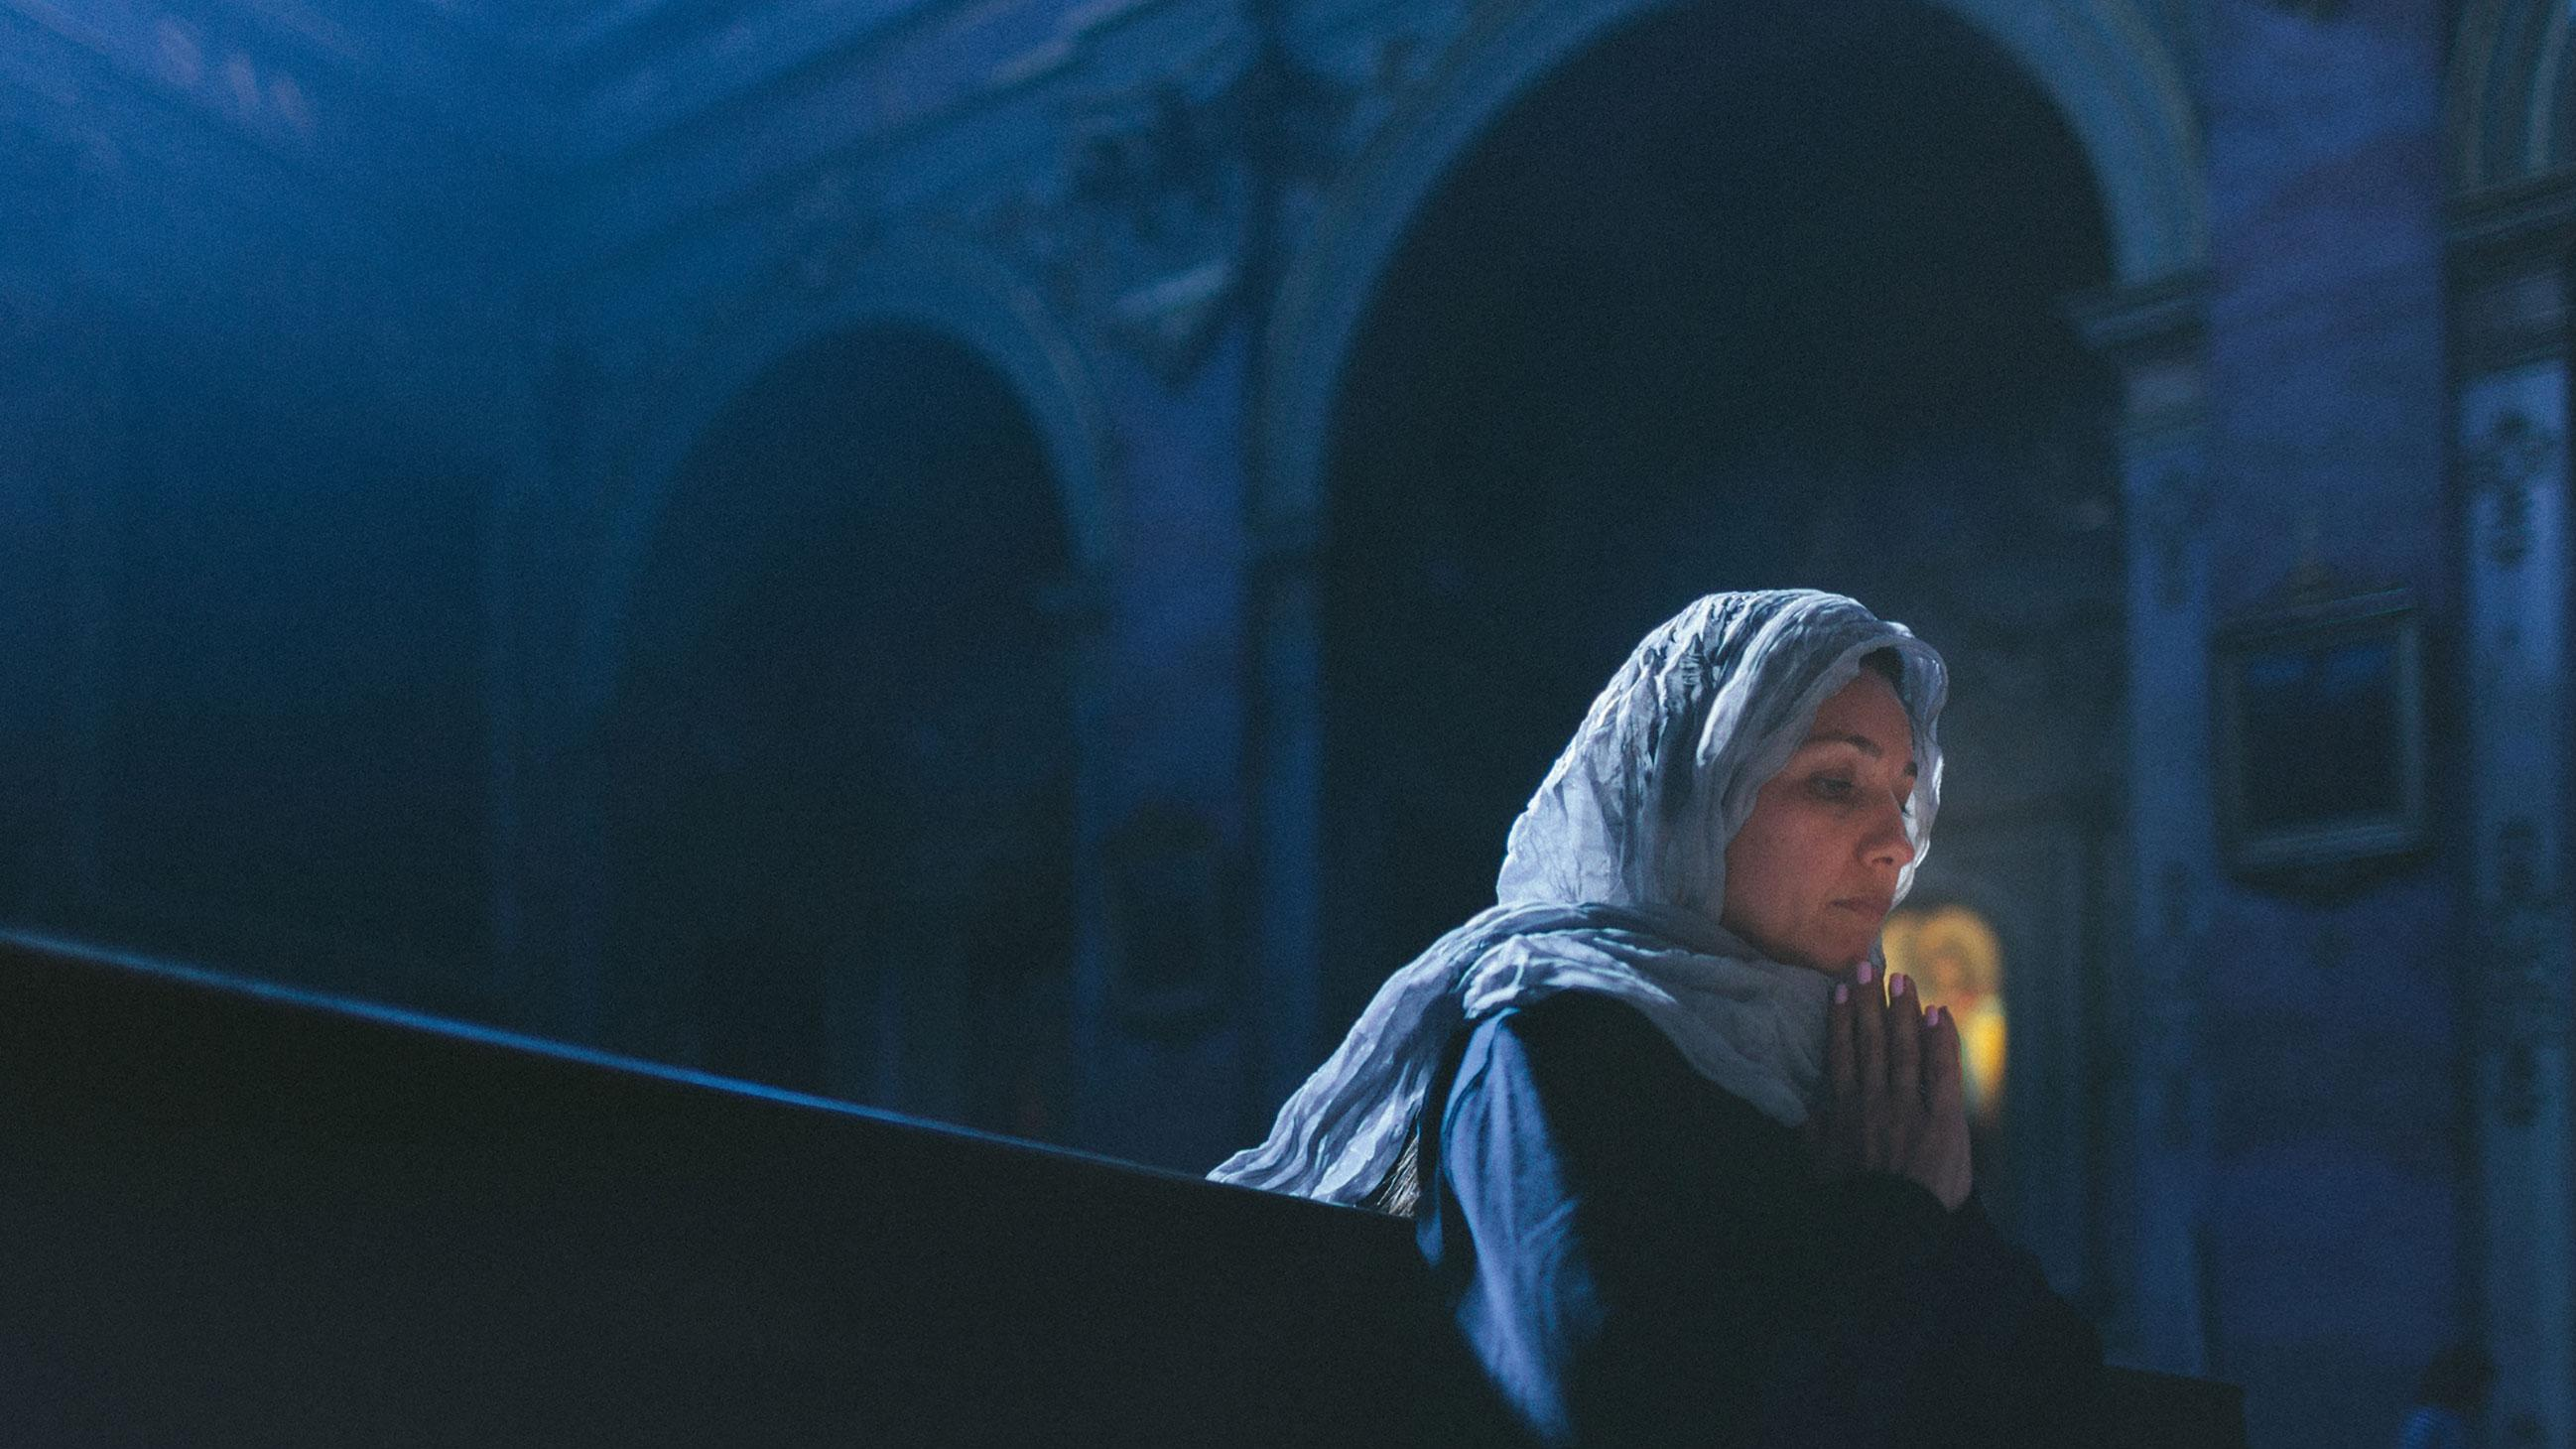 Woman with head cover alone in religious setting